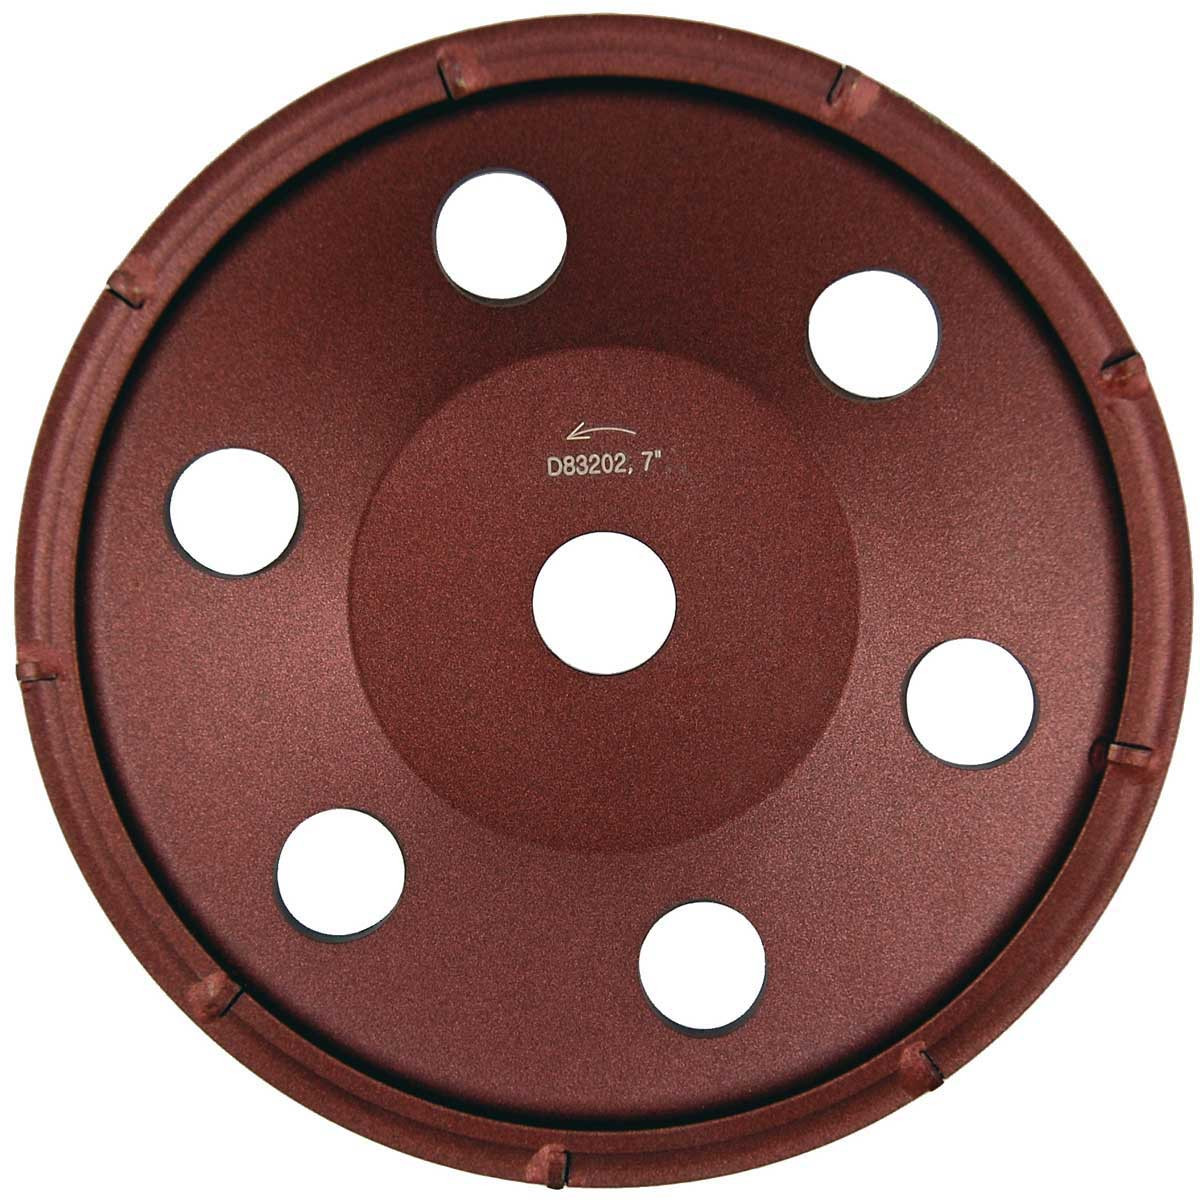 7 inch Diteq Cup Wheels Polycrystaline Diamond